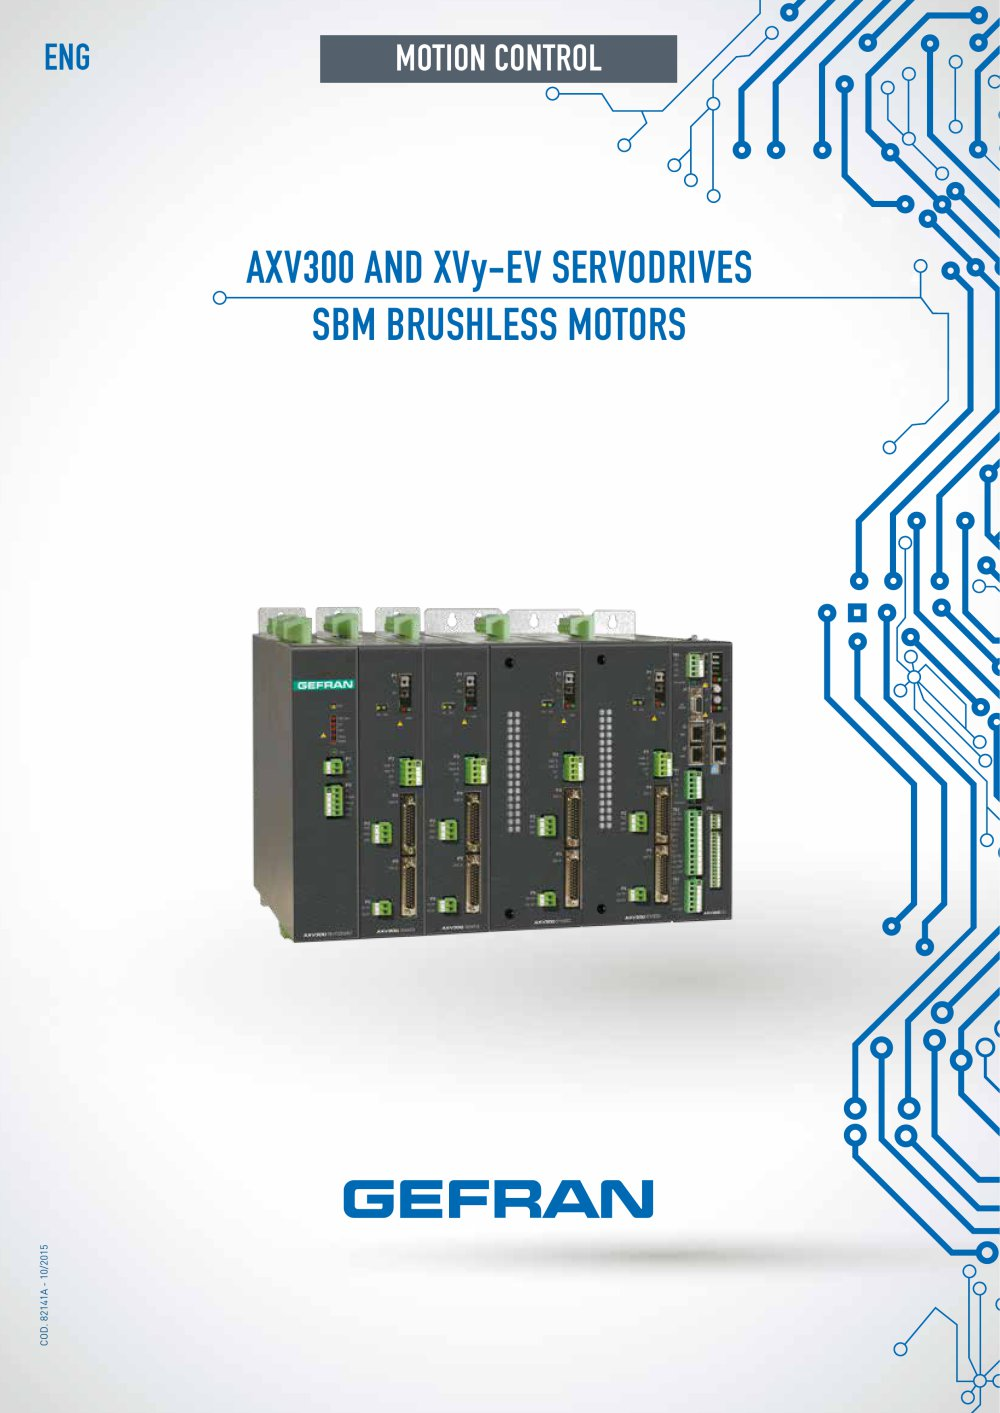 Axv300 And Xvy Ev Servodrives Sbm Brushless Motors Gefran Pdf Solid State Relay 1 16 Pages